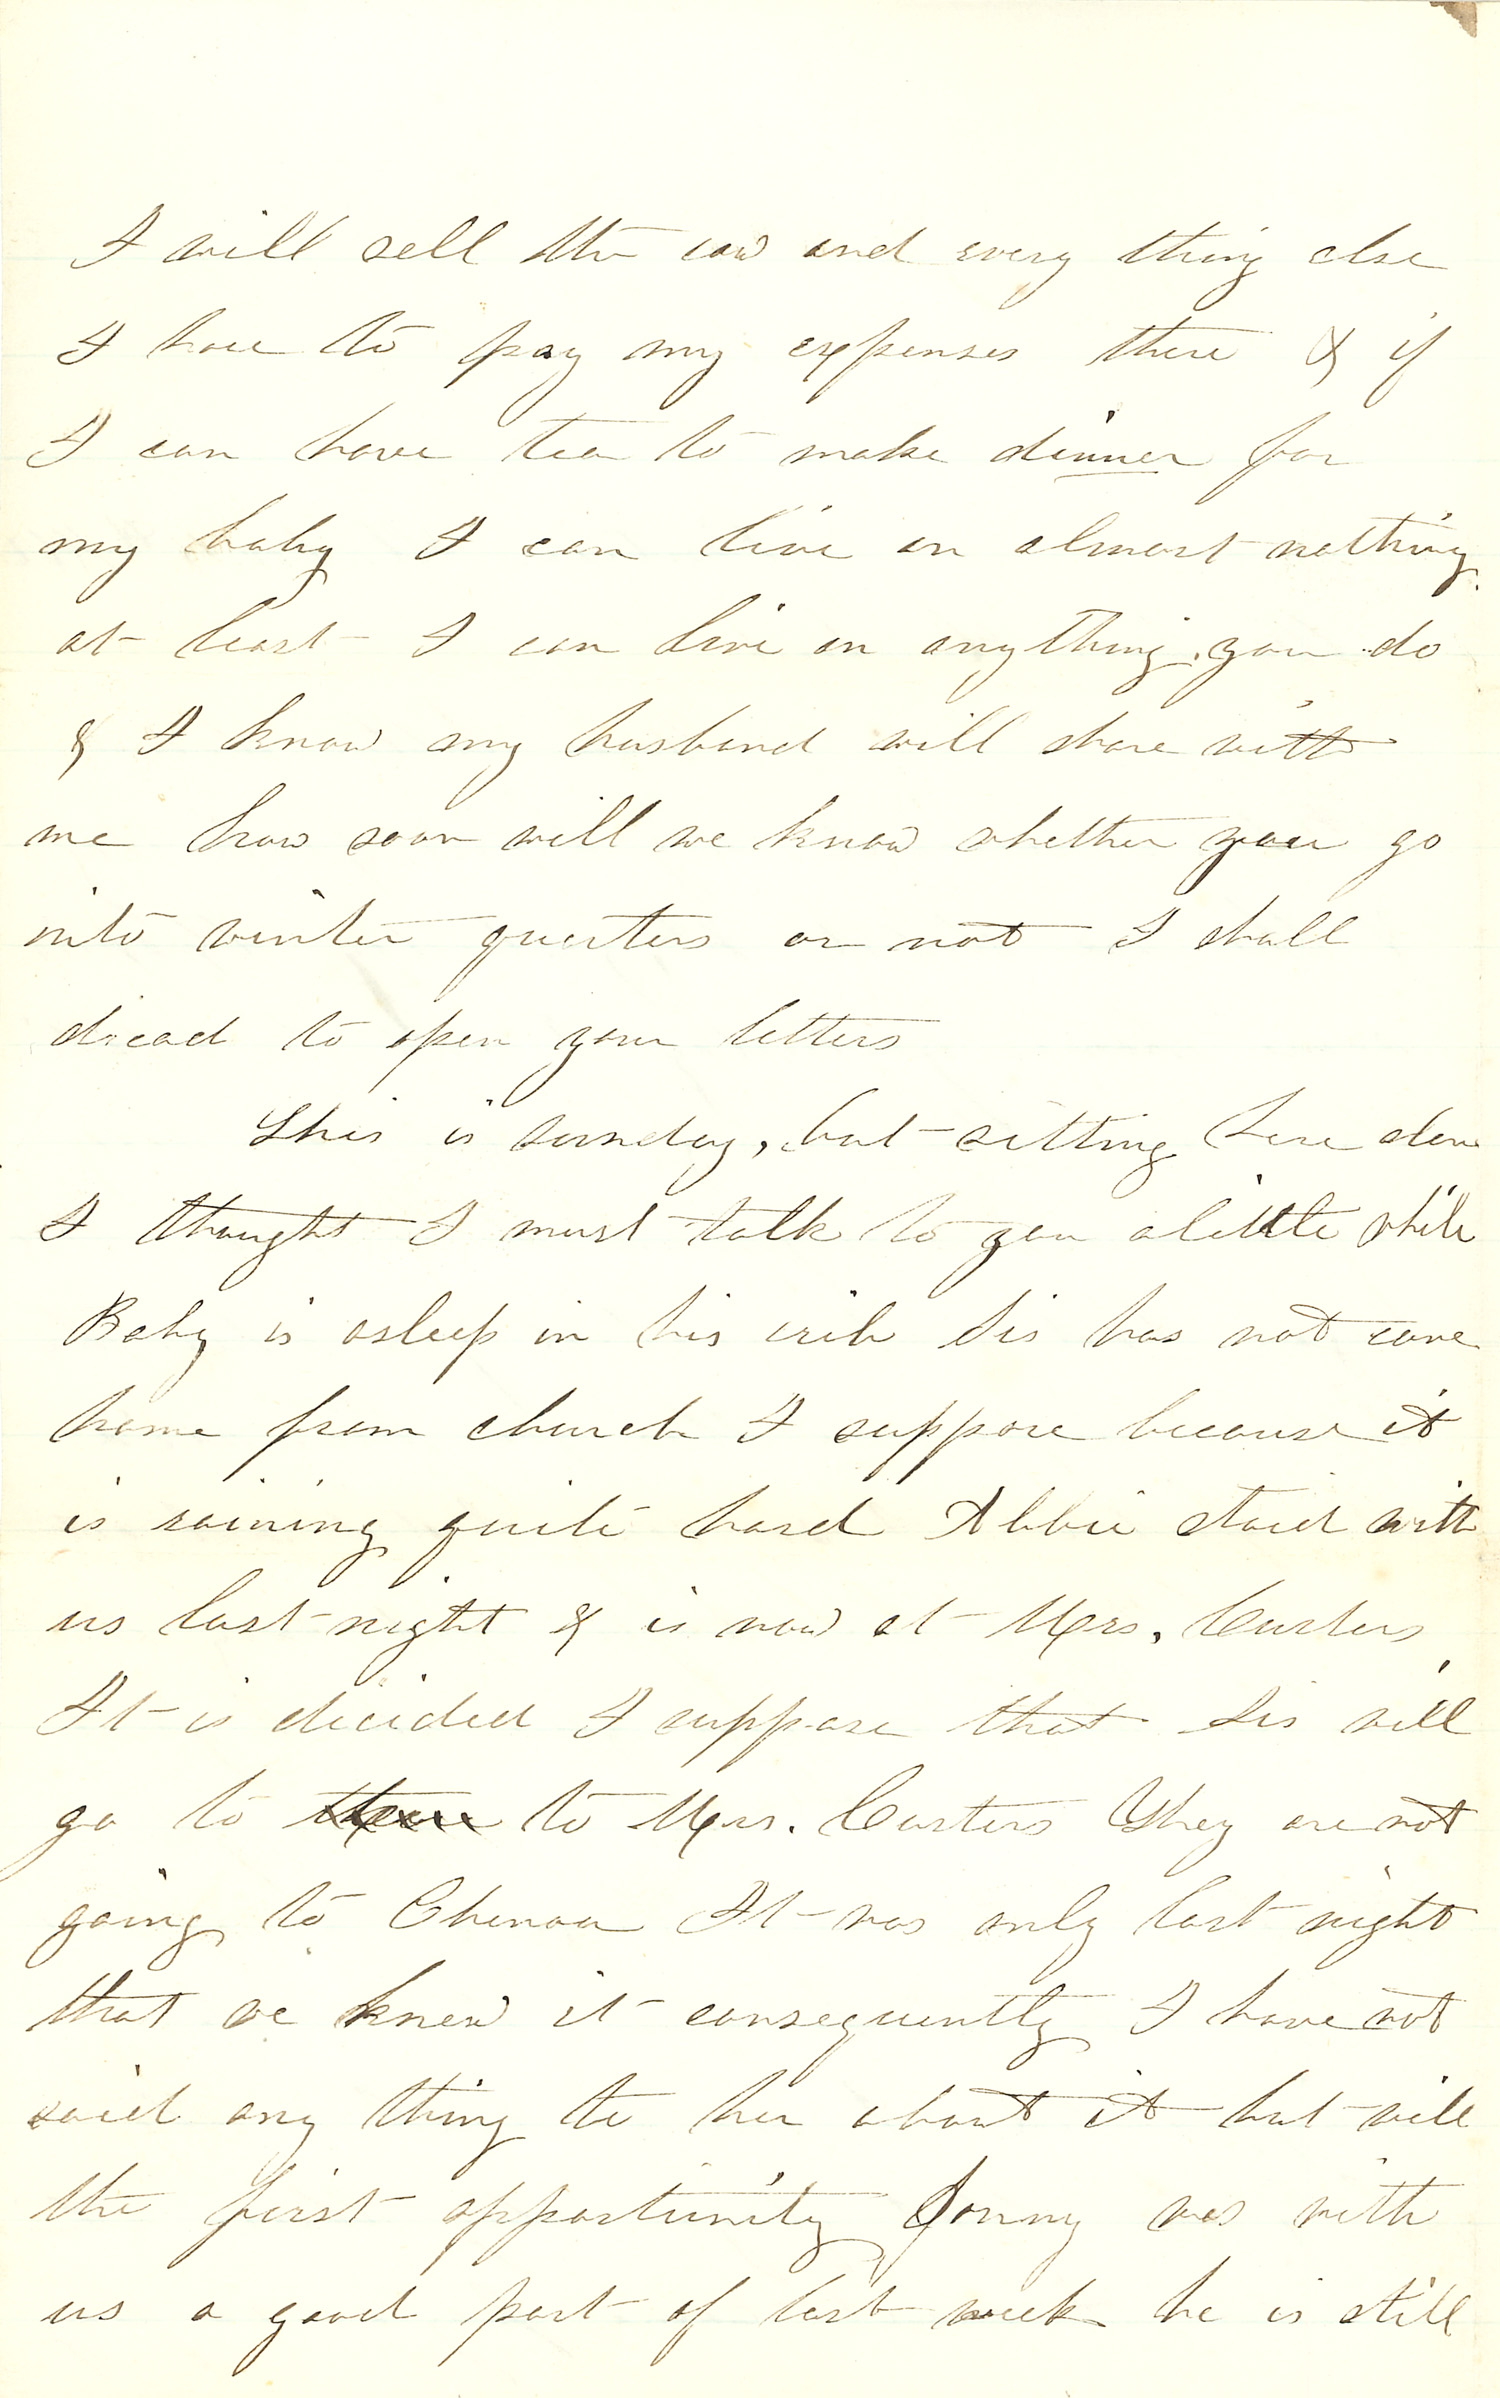 Joseph Culver Letter, November 14, 1862, Page 2